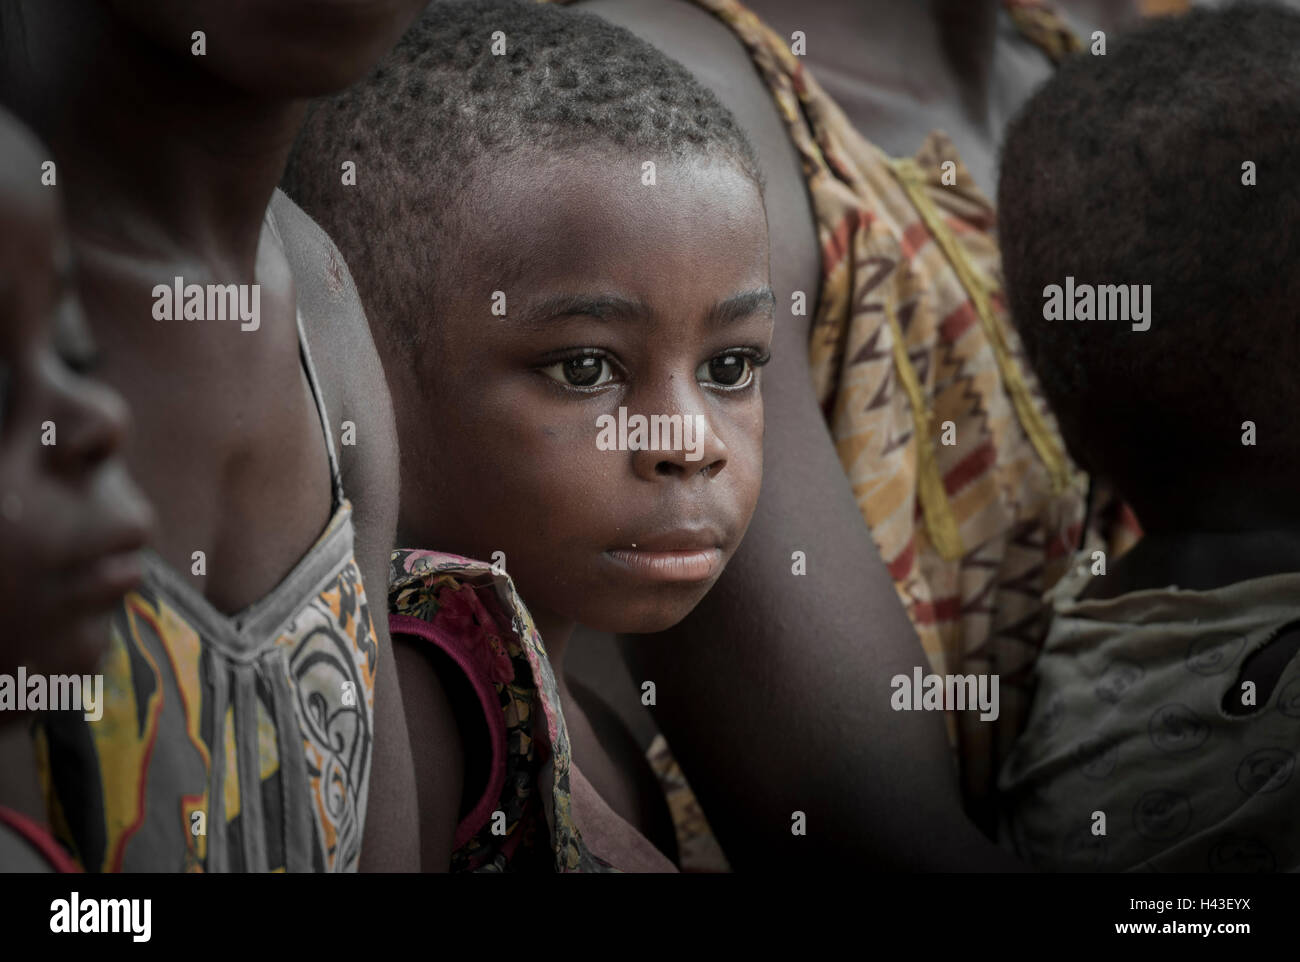 Pygmy, people of Baaka, or Baka, or Ba'aka, child, teenager, Southern Region, Cameroon - Stock Image